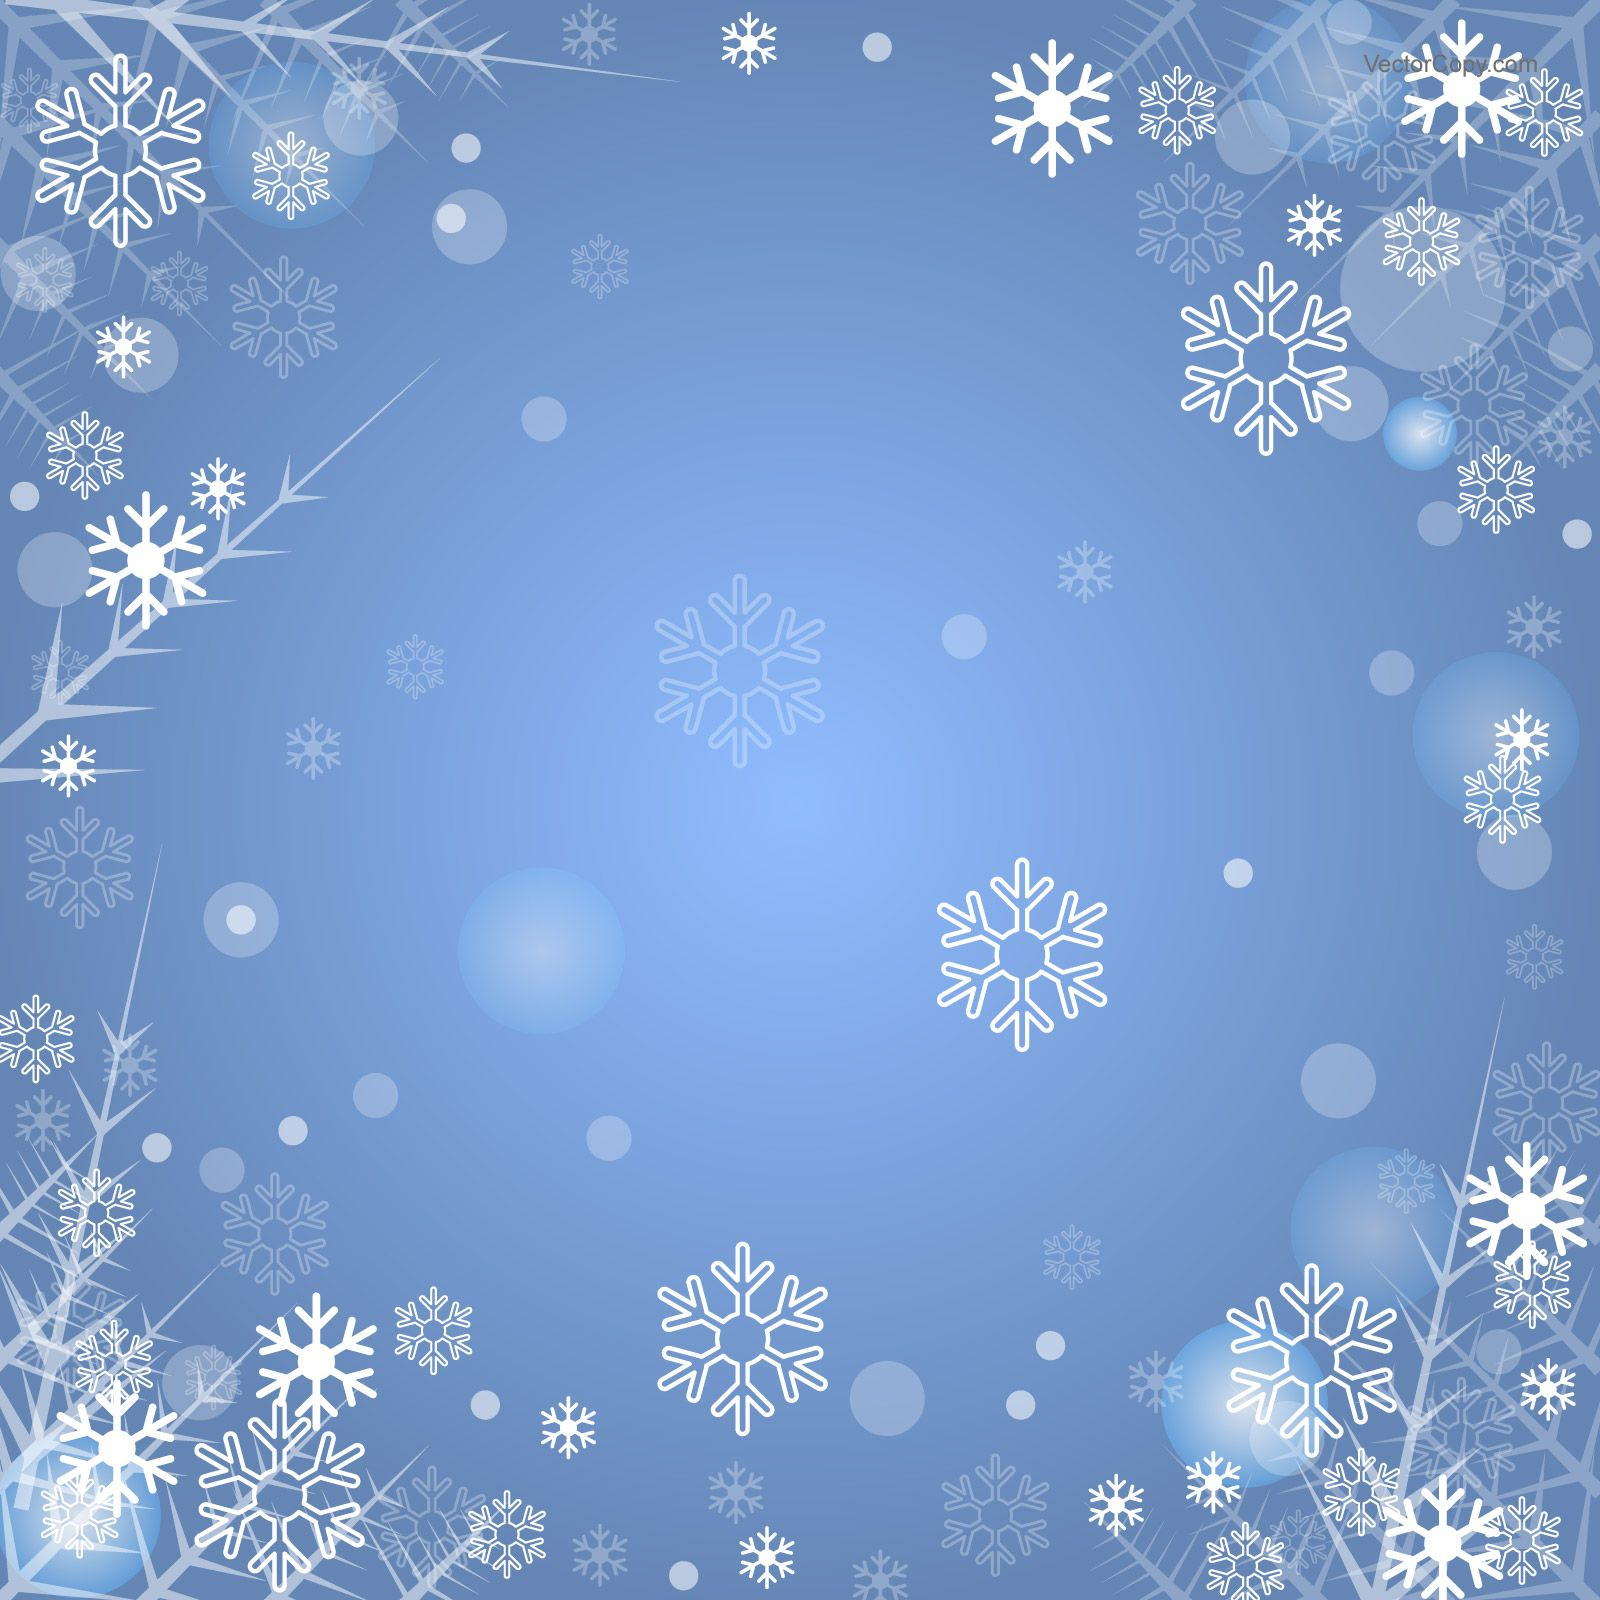 Blue winter background with snowflakes, download free vector.